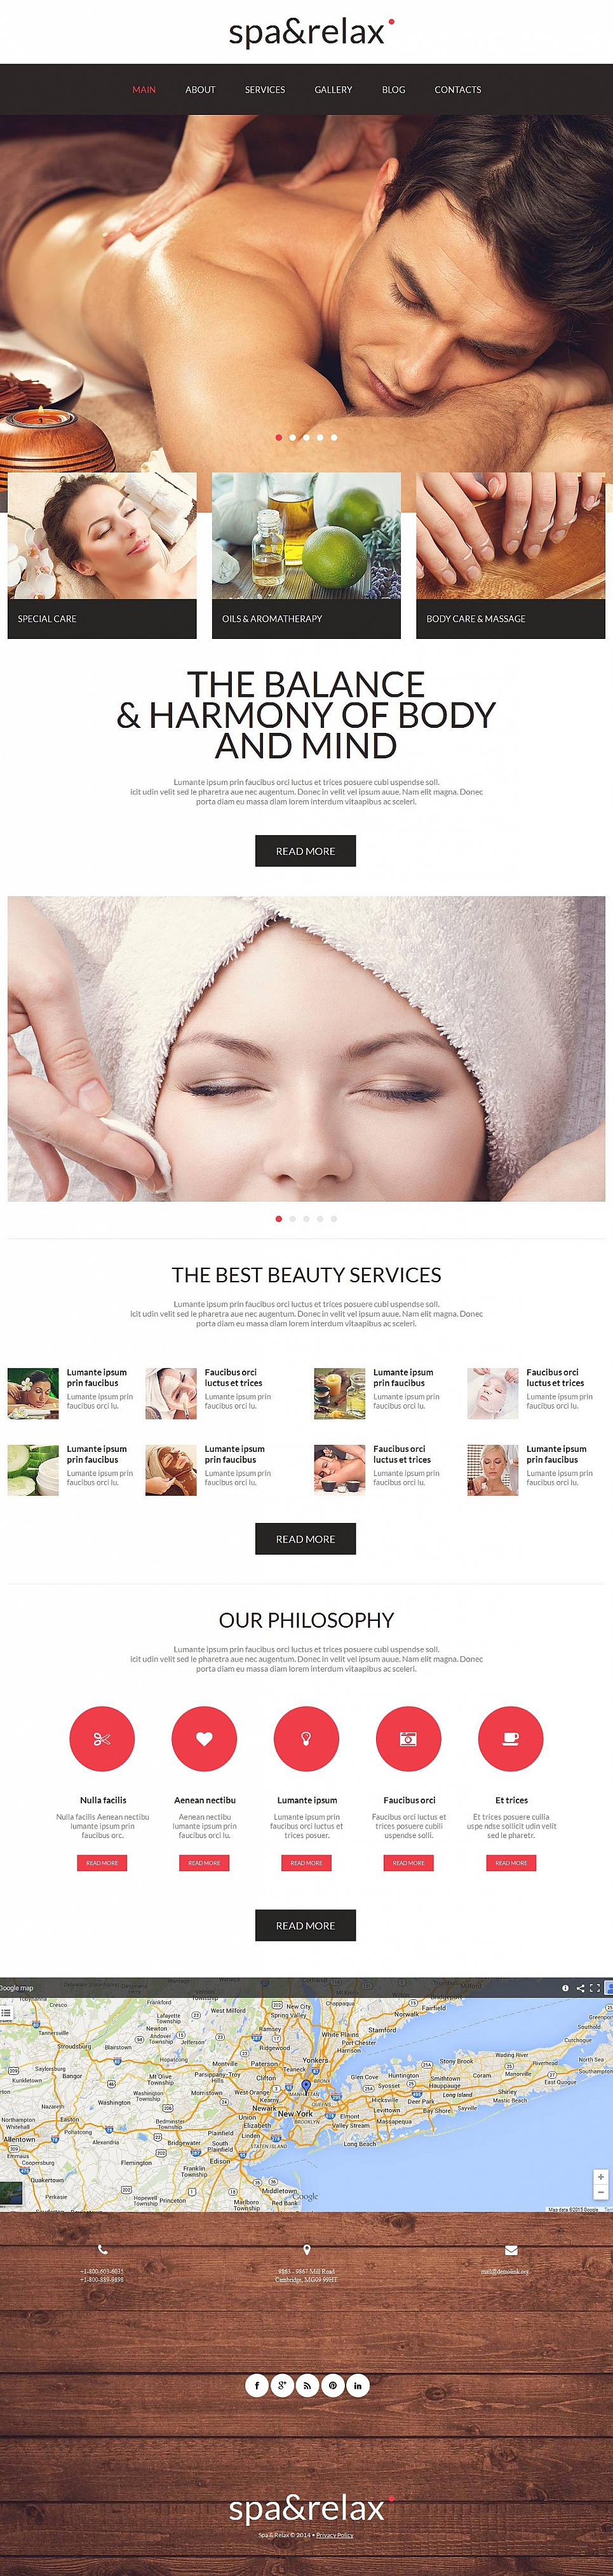 Complete Website Design for Beauty Salon - image